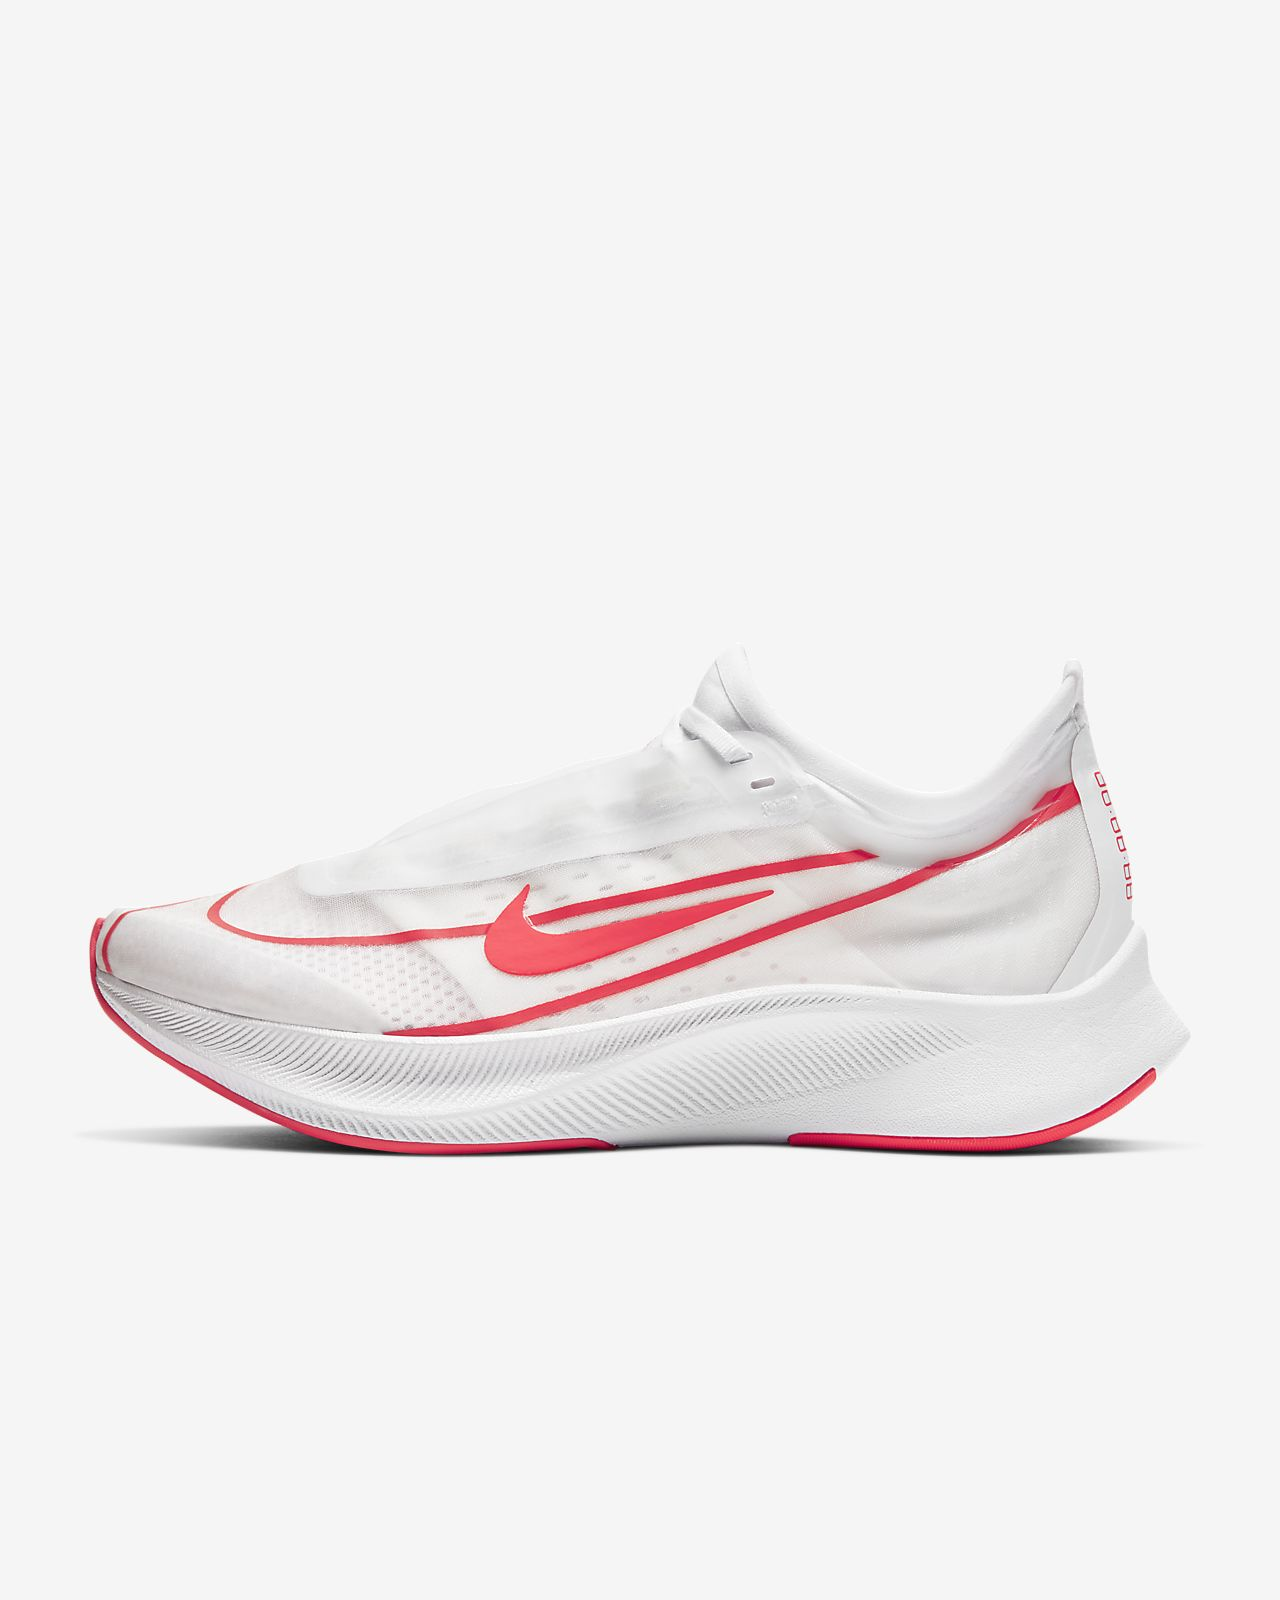 cheap best best trainers Nike Air Max 720 Carbone WhiteBlack AR9293 100 mens womens real running 2020 Sneakers shoes sneakers for sale high quality